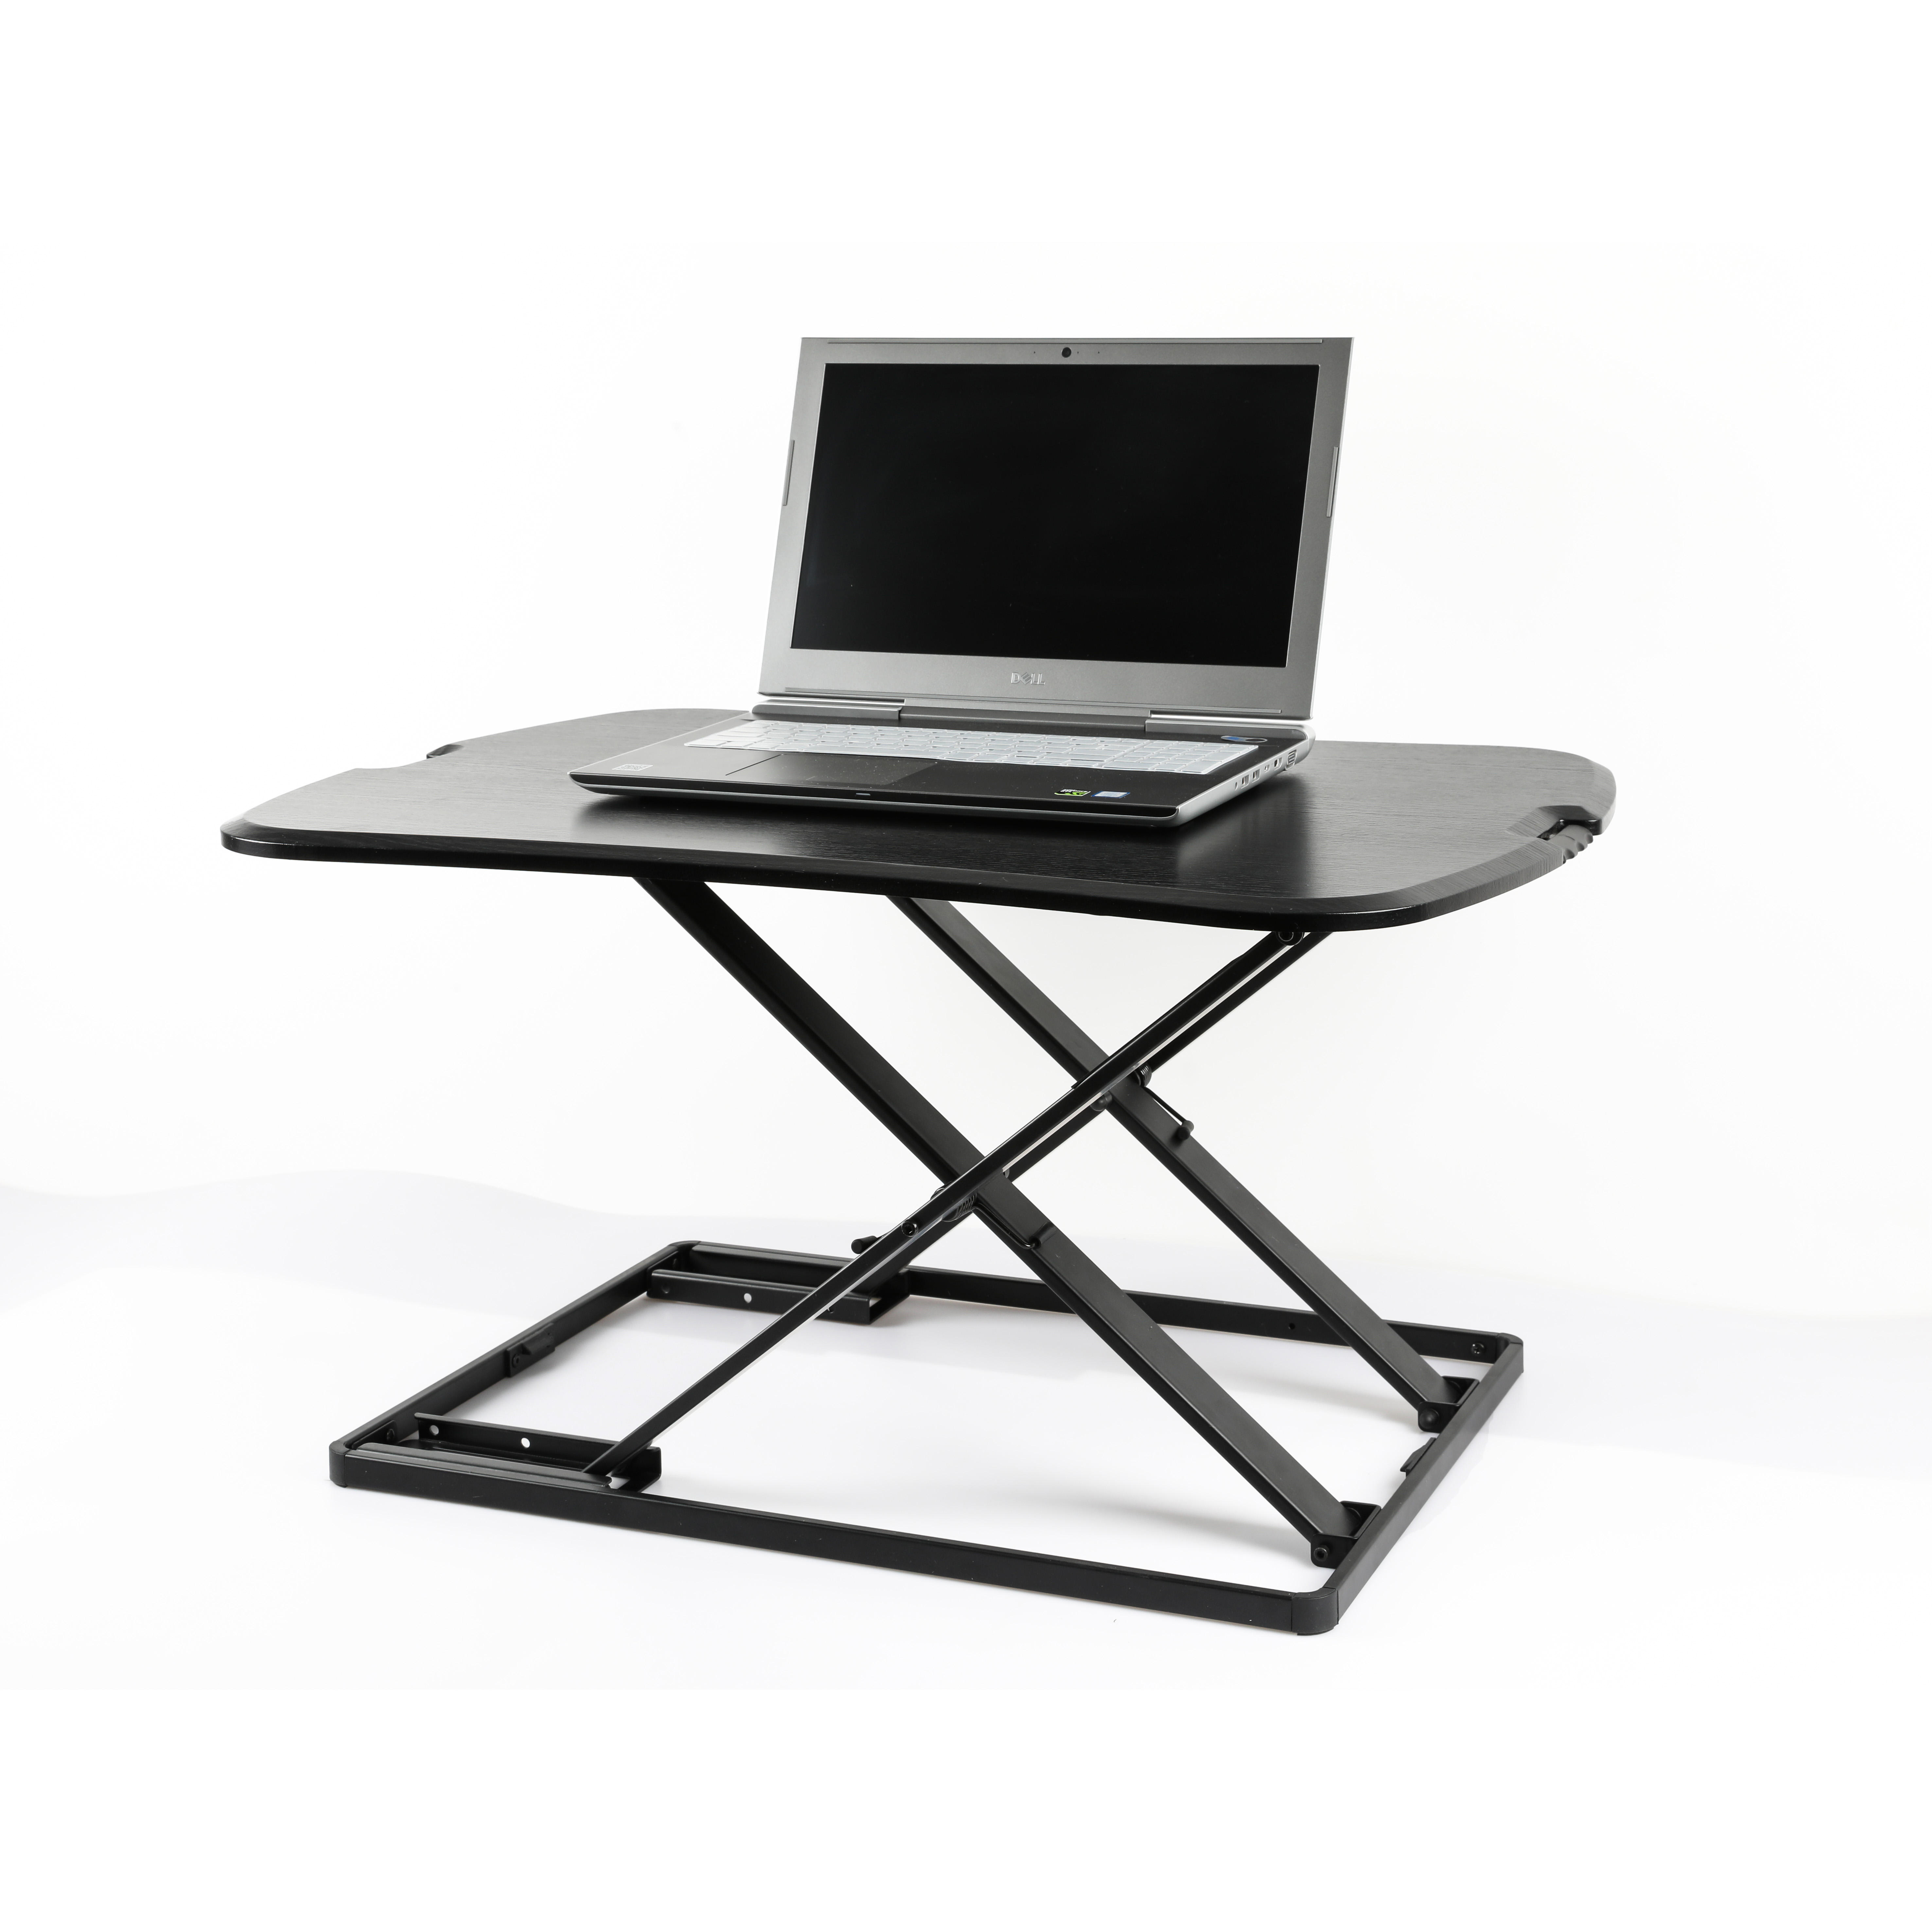 Office Furniture Ergonomic Height Adjustable Laptop Standing Desk Sit To Stand up Computer Desk Converter